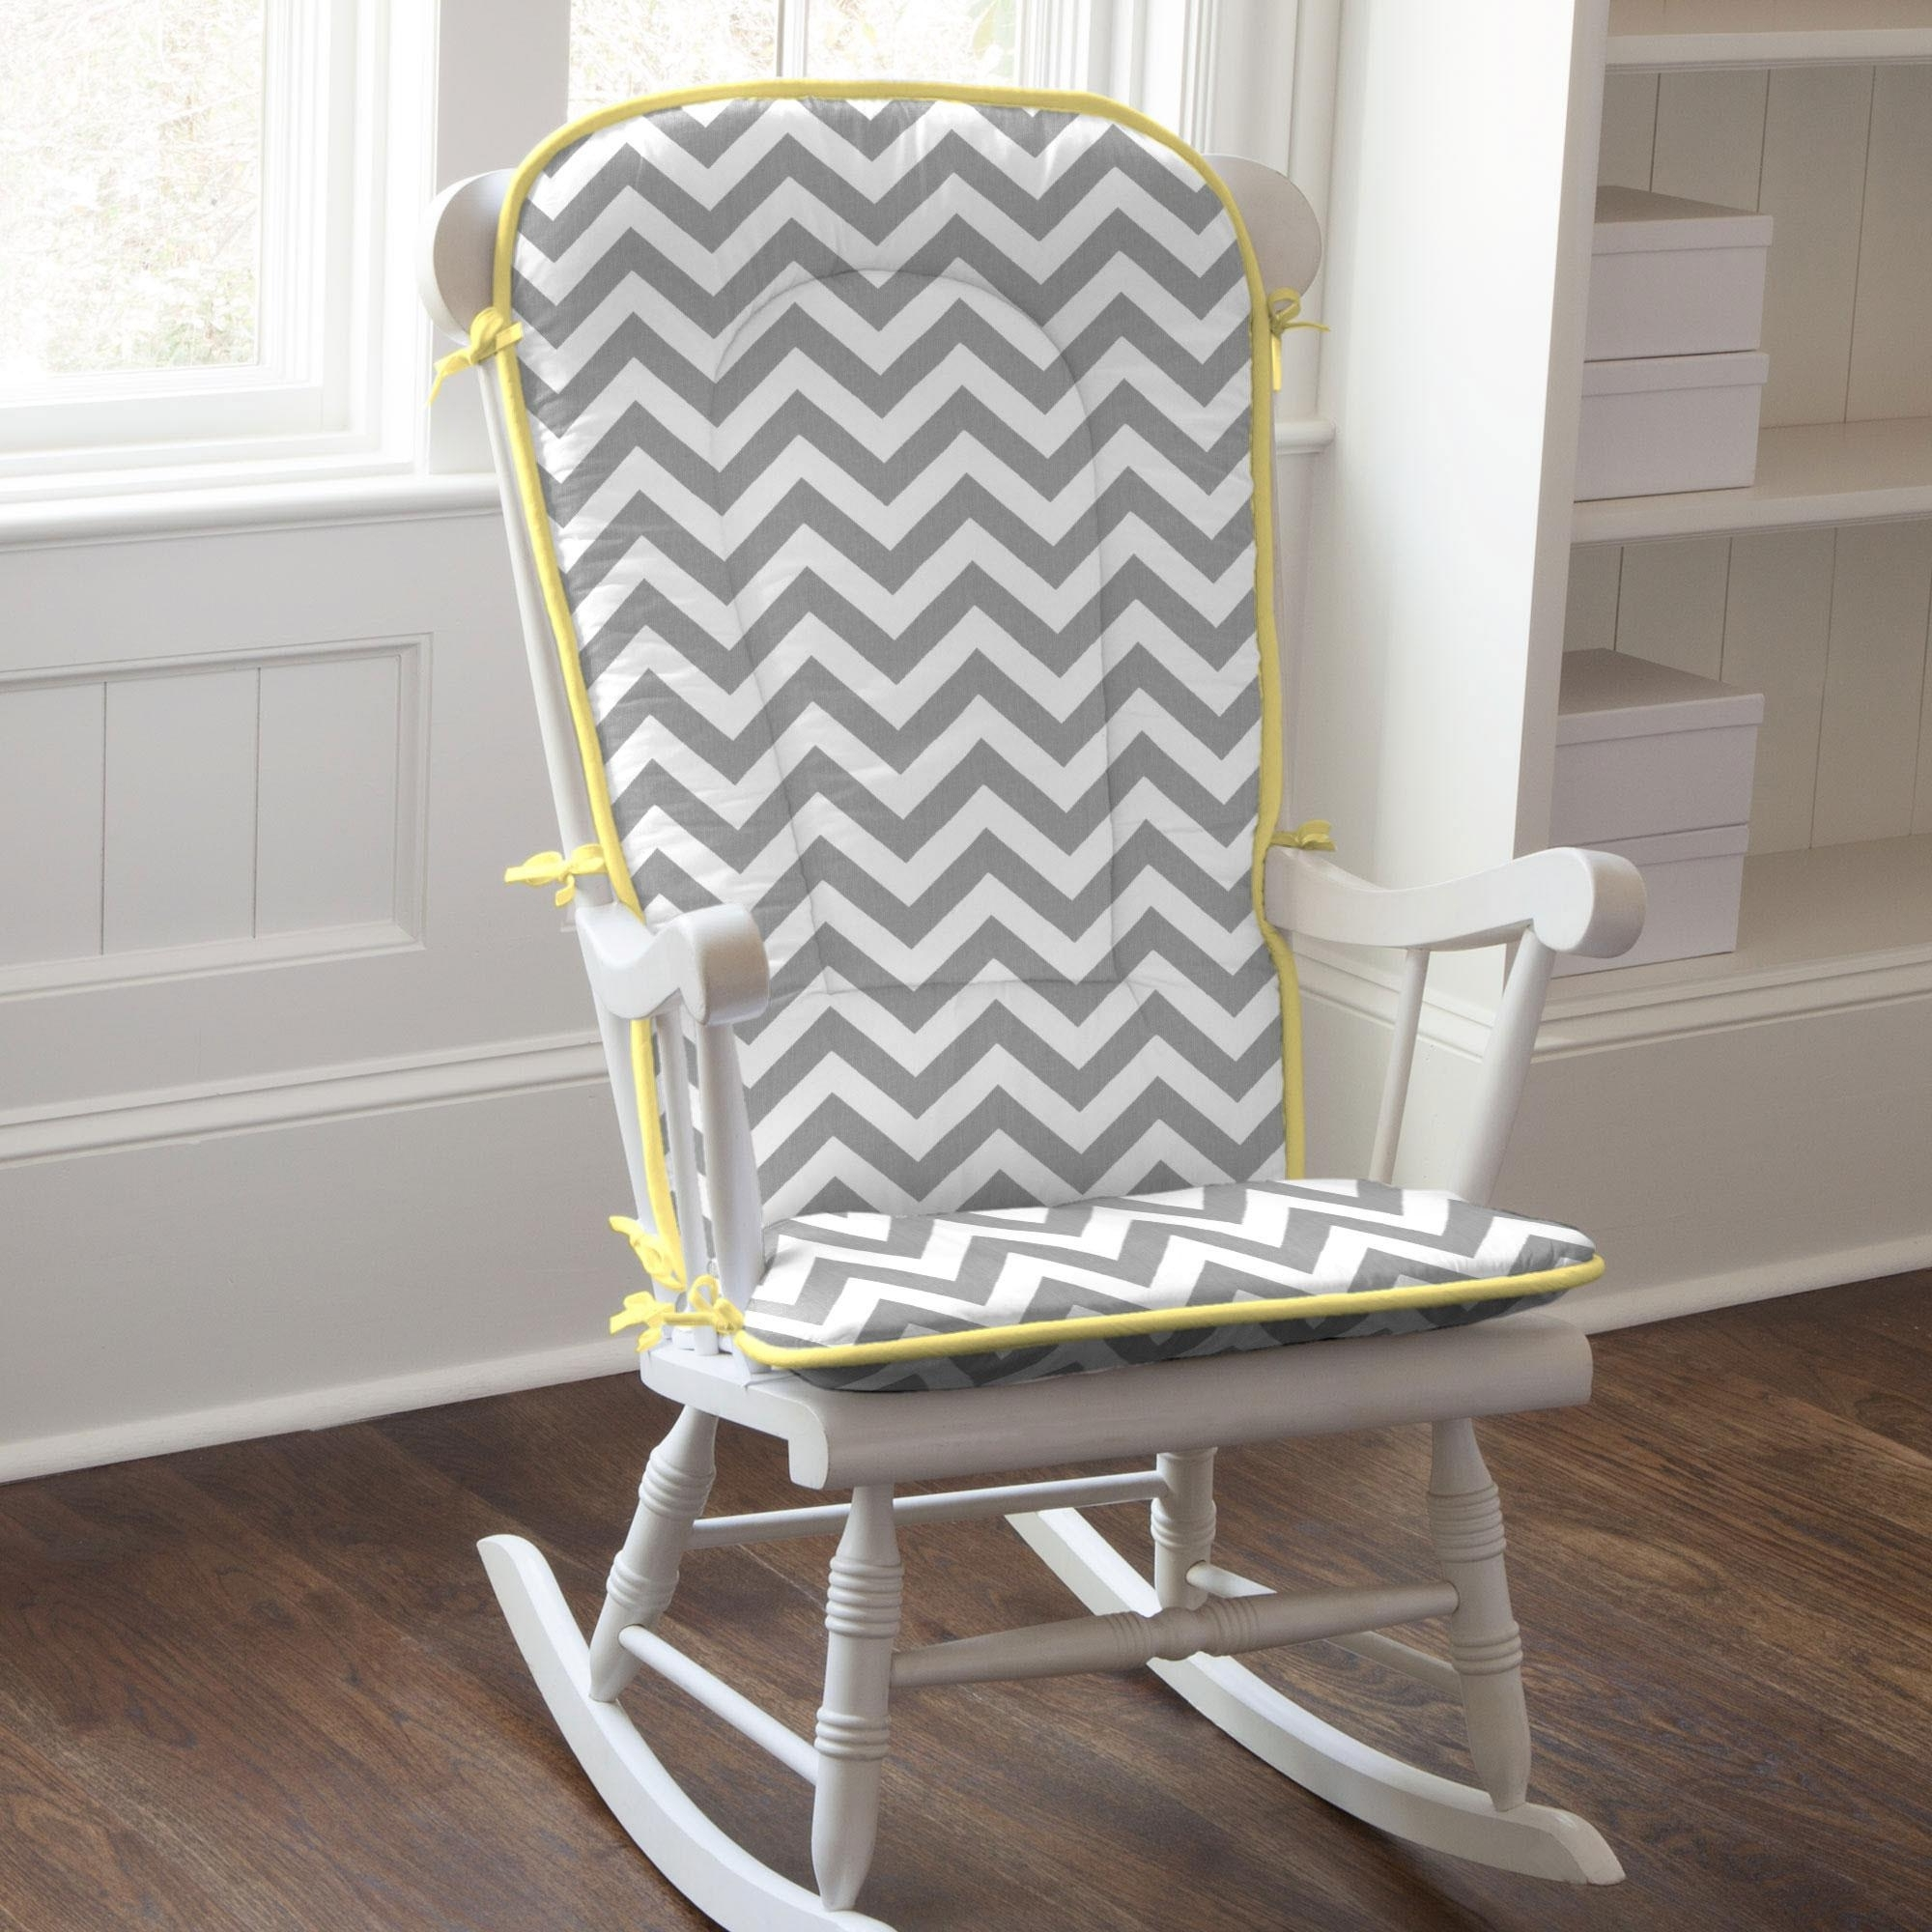 Carousel Designs For Yellow Outdoor Rocking Chairs (View 3 of 20)